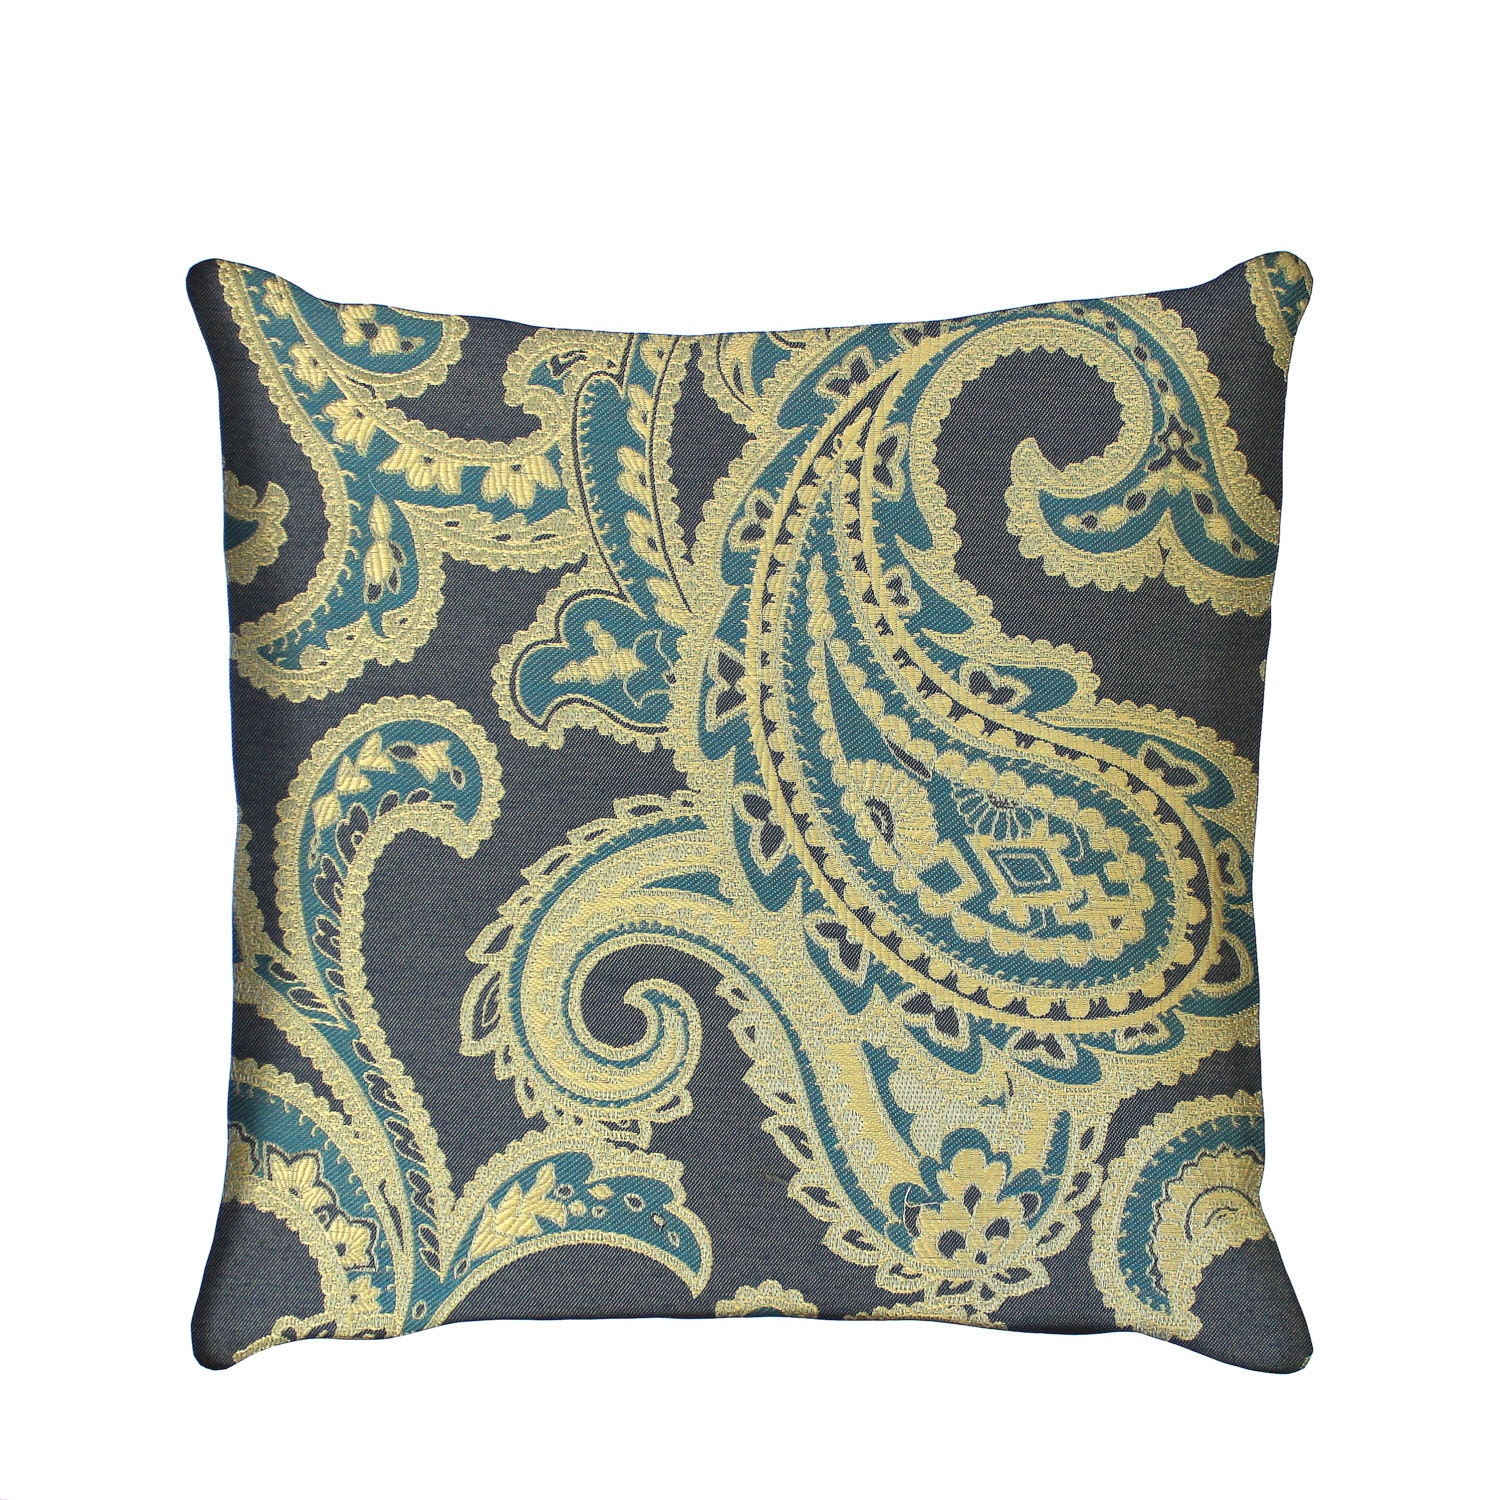 Fabric For Throw Pillow Covers : Blue Pillow Cover Paisley Upholstery Fabric Decorative Pillow